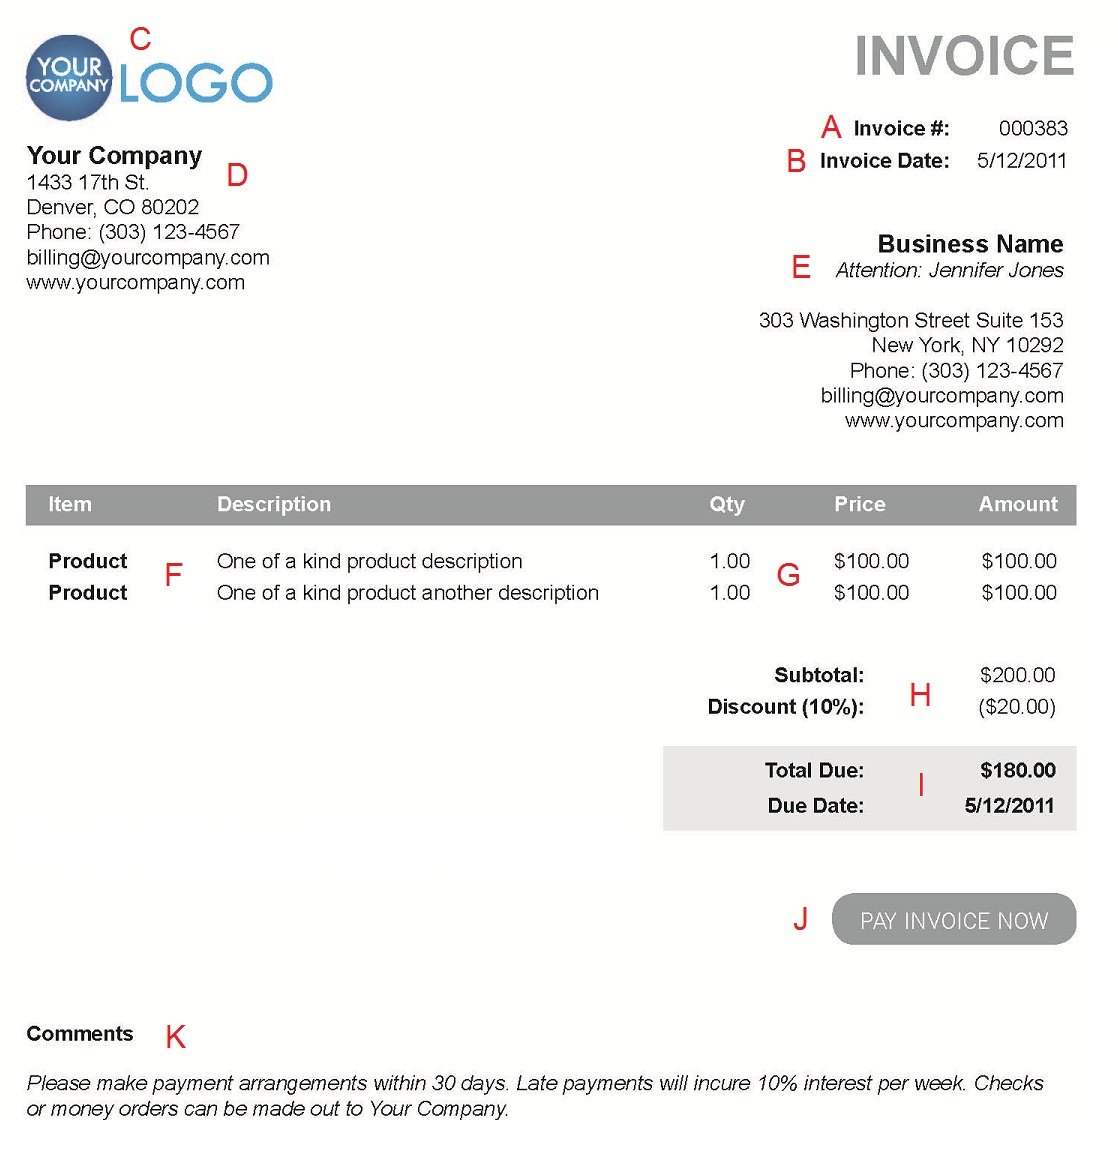 Maidofhonortoastus  Surprising The  Different Sections Of An Electronic Payment Invoice With Licious A  With Beautiful Immigrant Visa Application Processing Fee Bill Invoice Also Quicken Invoices In Addition Ford Invoice Pricing And How Do I Make An Invoice As Well As Invoice Designs Additionally Quote Invoice From Paysimplecom With Maidofhonortoastus  Licious The  Different Sections Of An Electronic Payment Invoice With Beautiful A  And Surprising Immigrant Visa Application Processing Fee Bill Invoice Also Quicken Invoices In Addition Ford Invoice Pricing From Paysimplecom